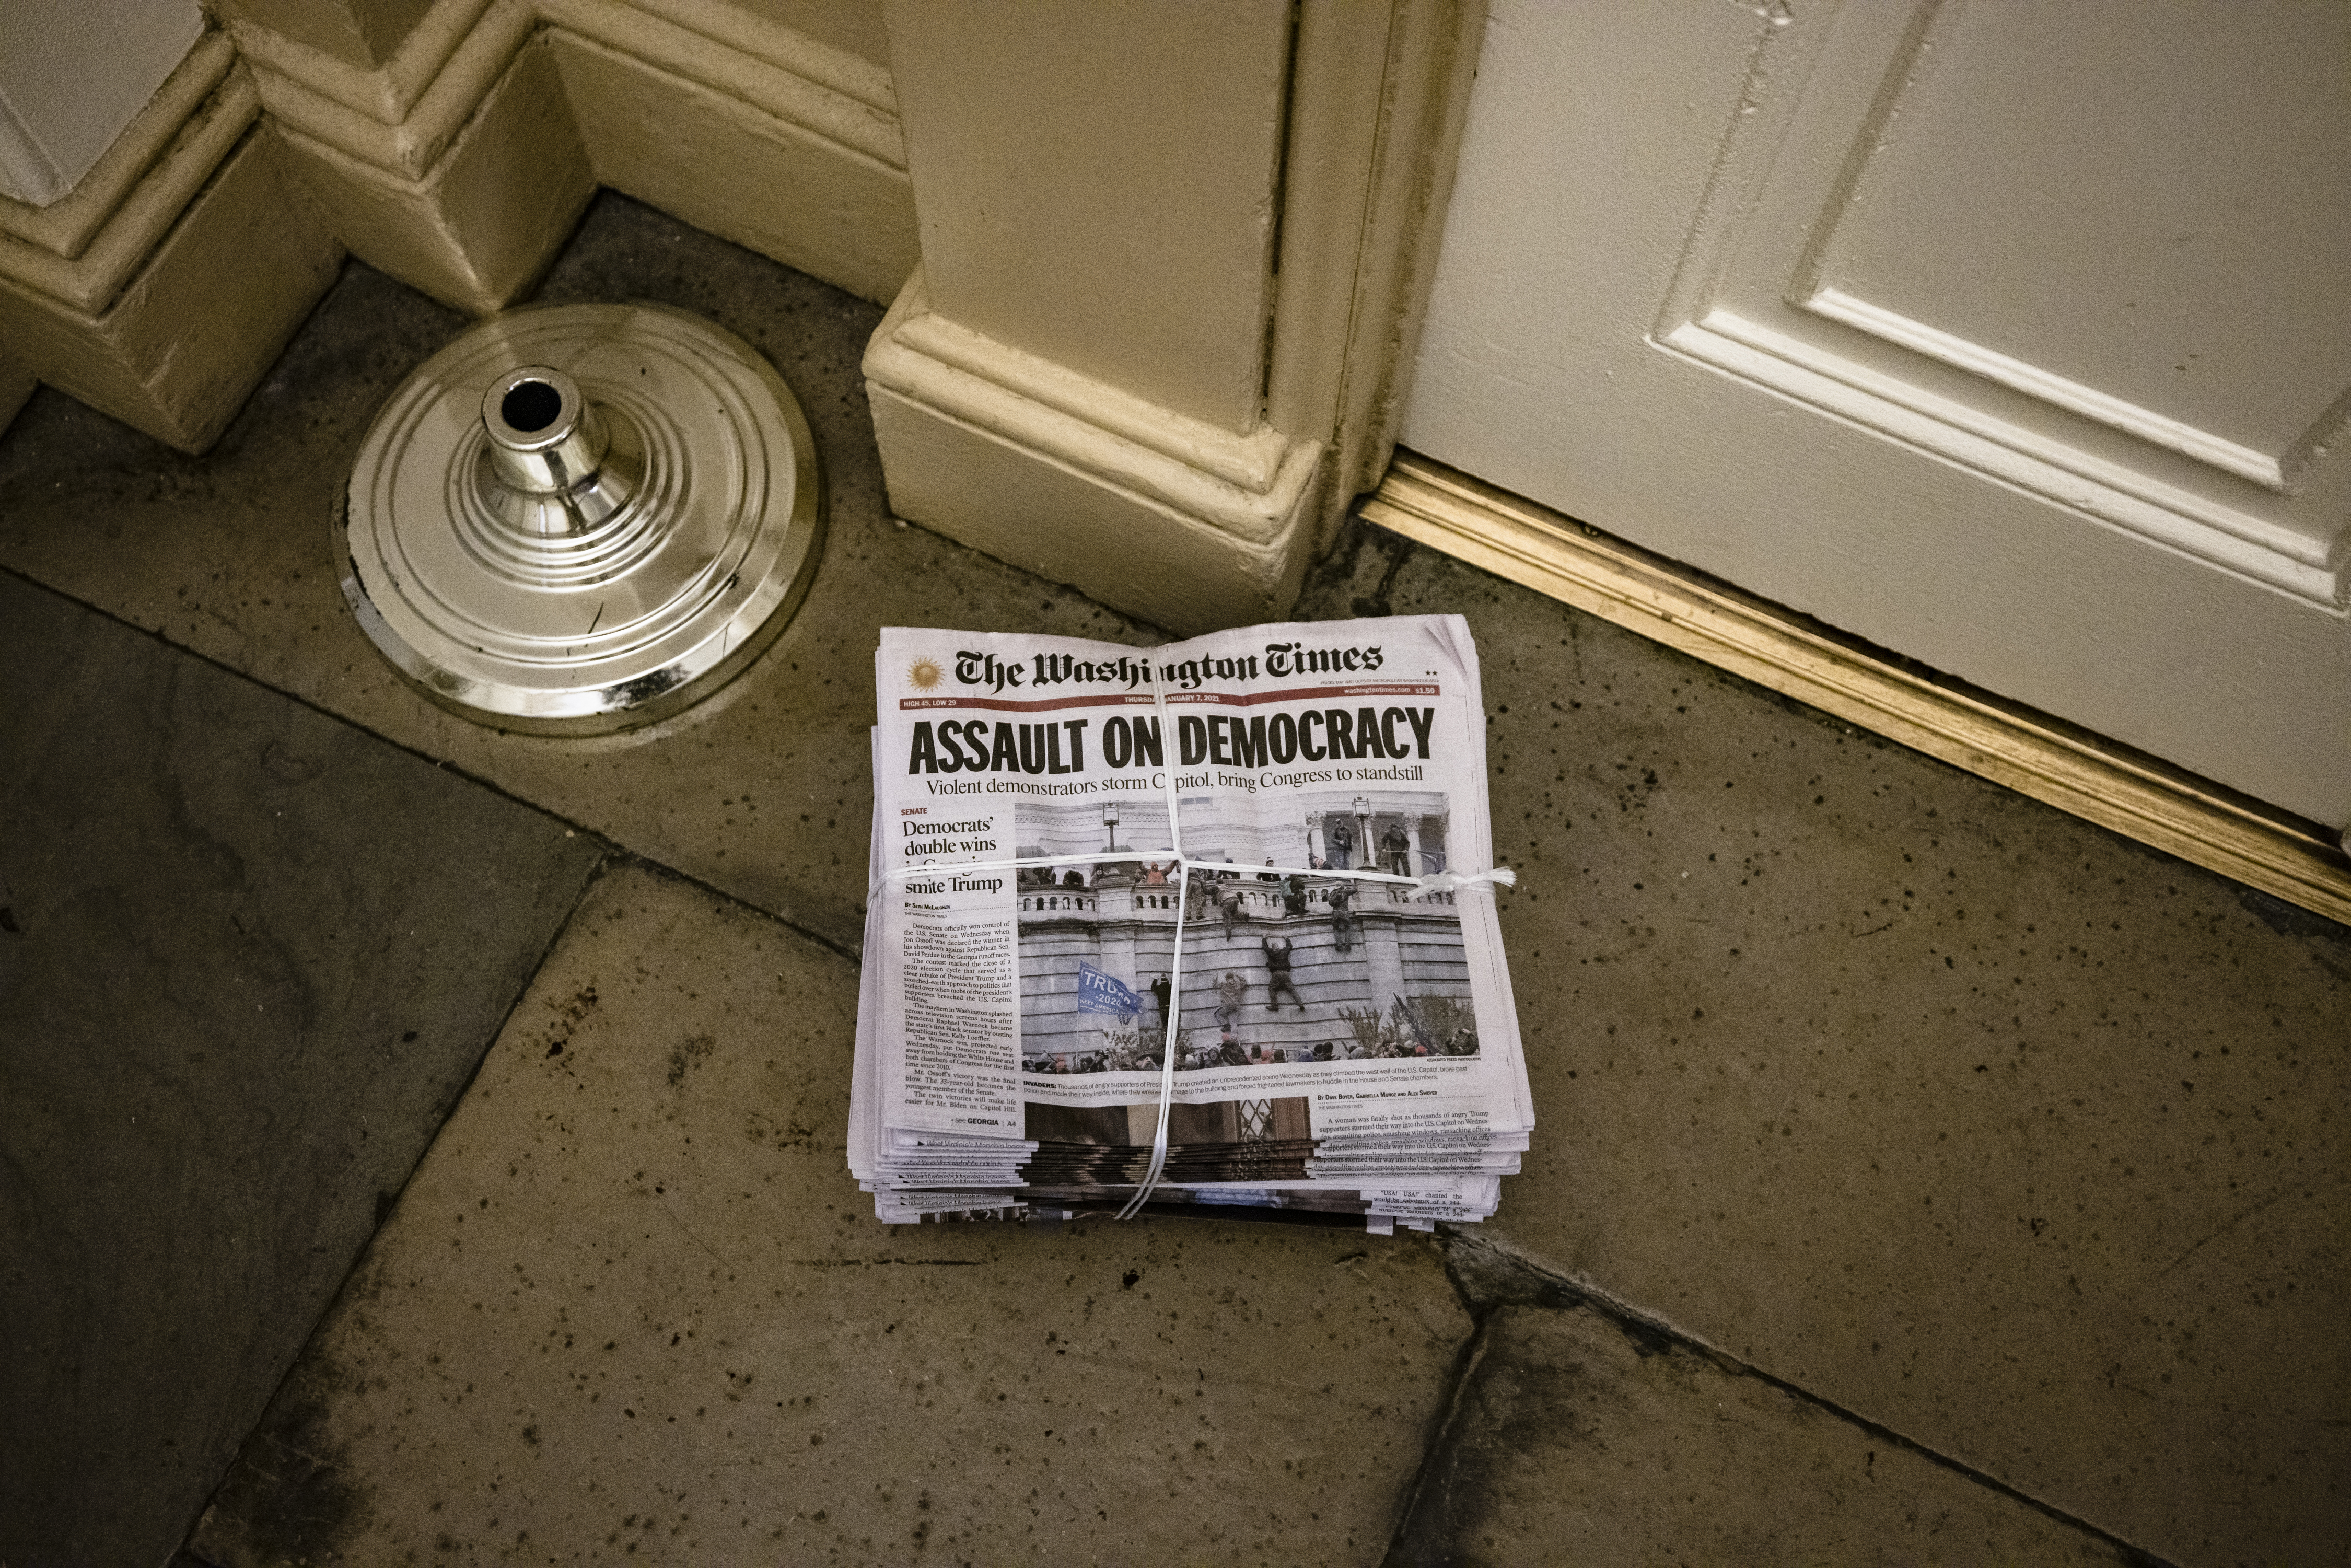 WASHINGTON, DC - JANUARY 07: A stack of today's edition of The Washington Times is left outside of an office in the U.S. Capitol building on January 7, 2021 in Washington, DC. Following a rally yesterday with President Donald Trump on the National Mall, a pro-Trump mob stormed and broke into the U.S. Capitol building causing a Joint Session of Congress to delay the certification of President-elect Joe Biden's victory over President Trump. (Photo by Samuel Corum/Getty Images)